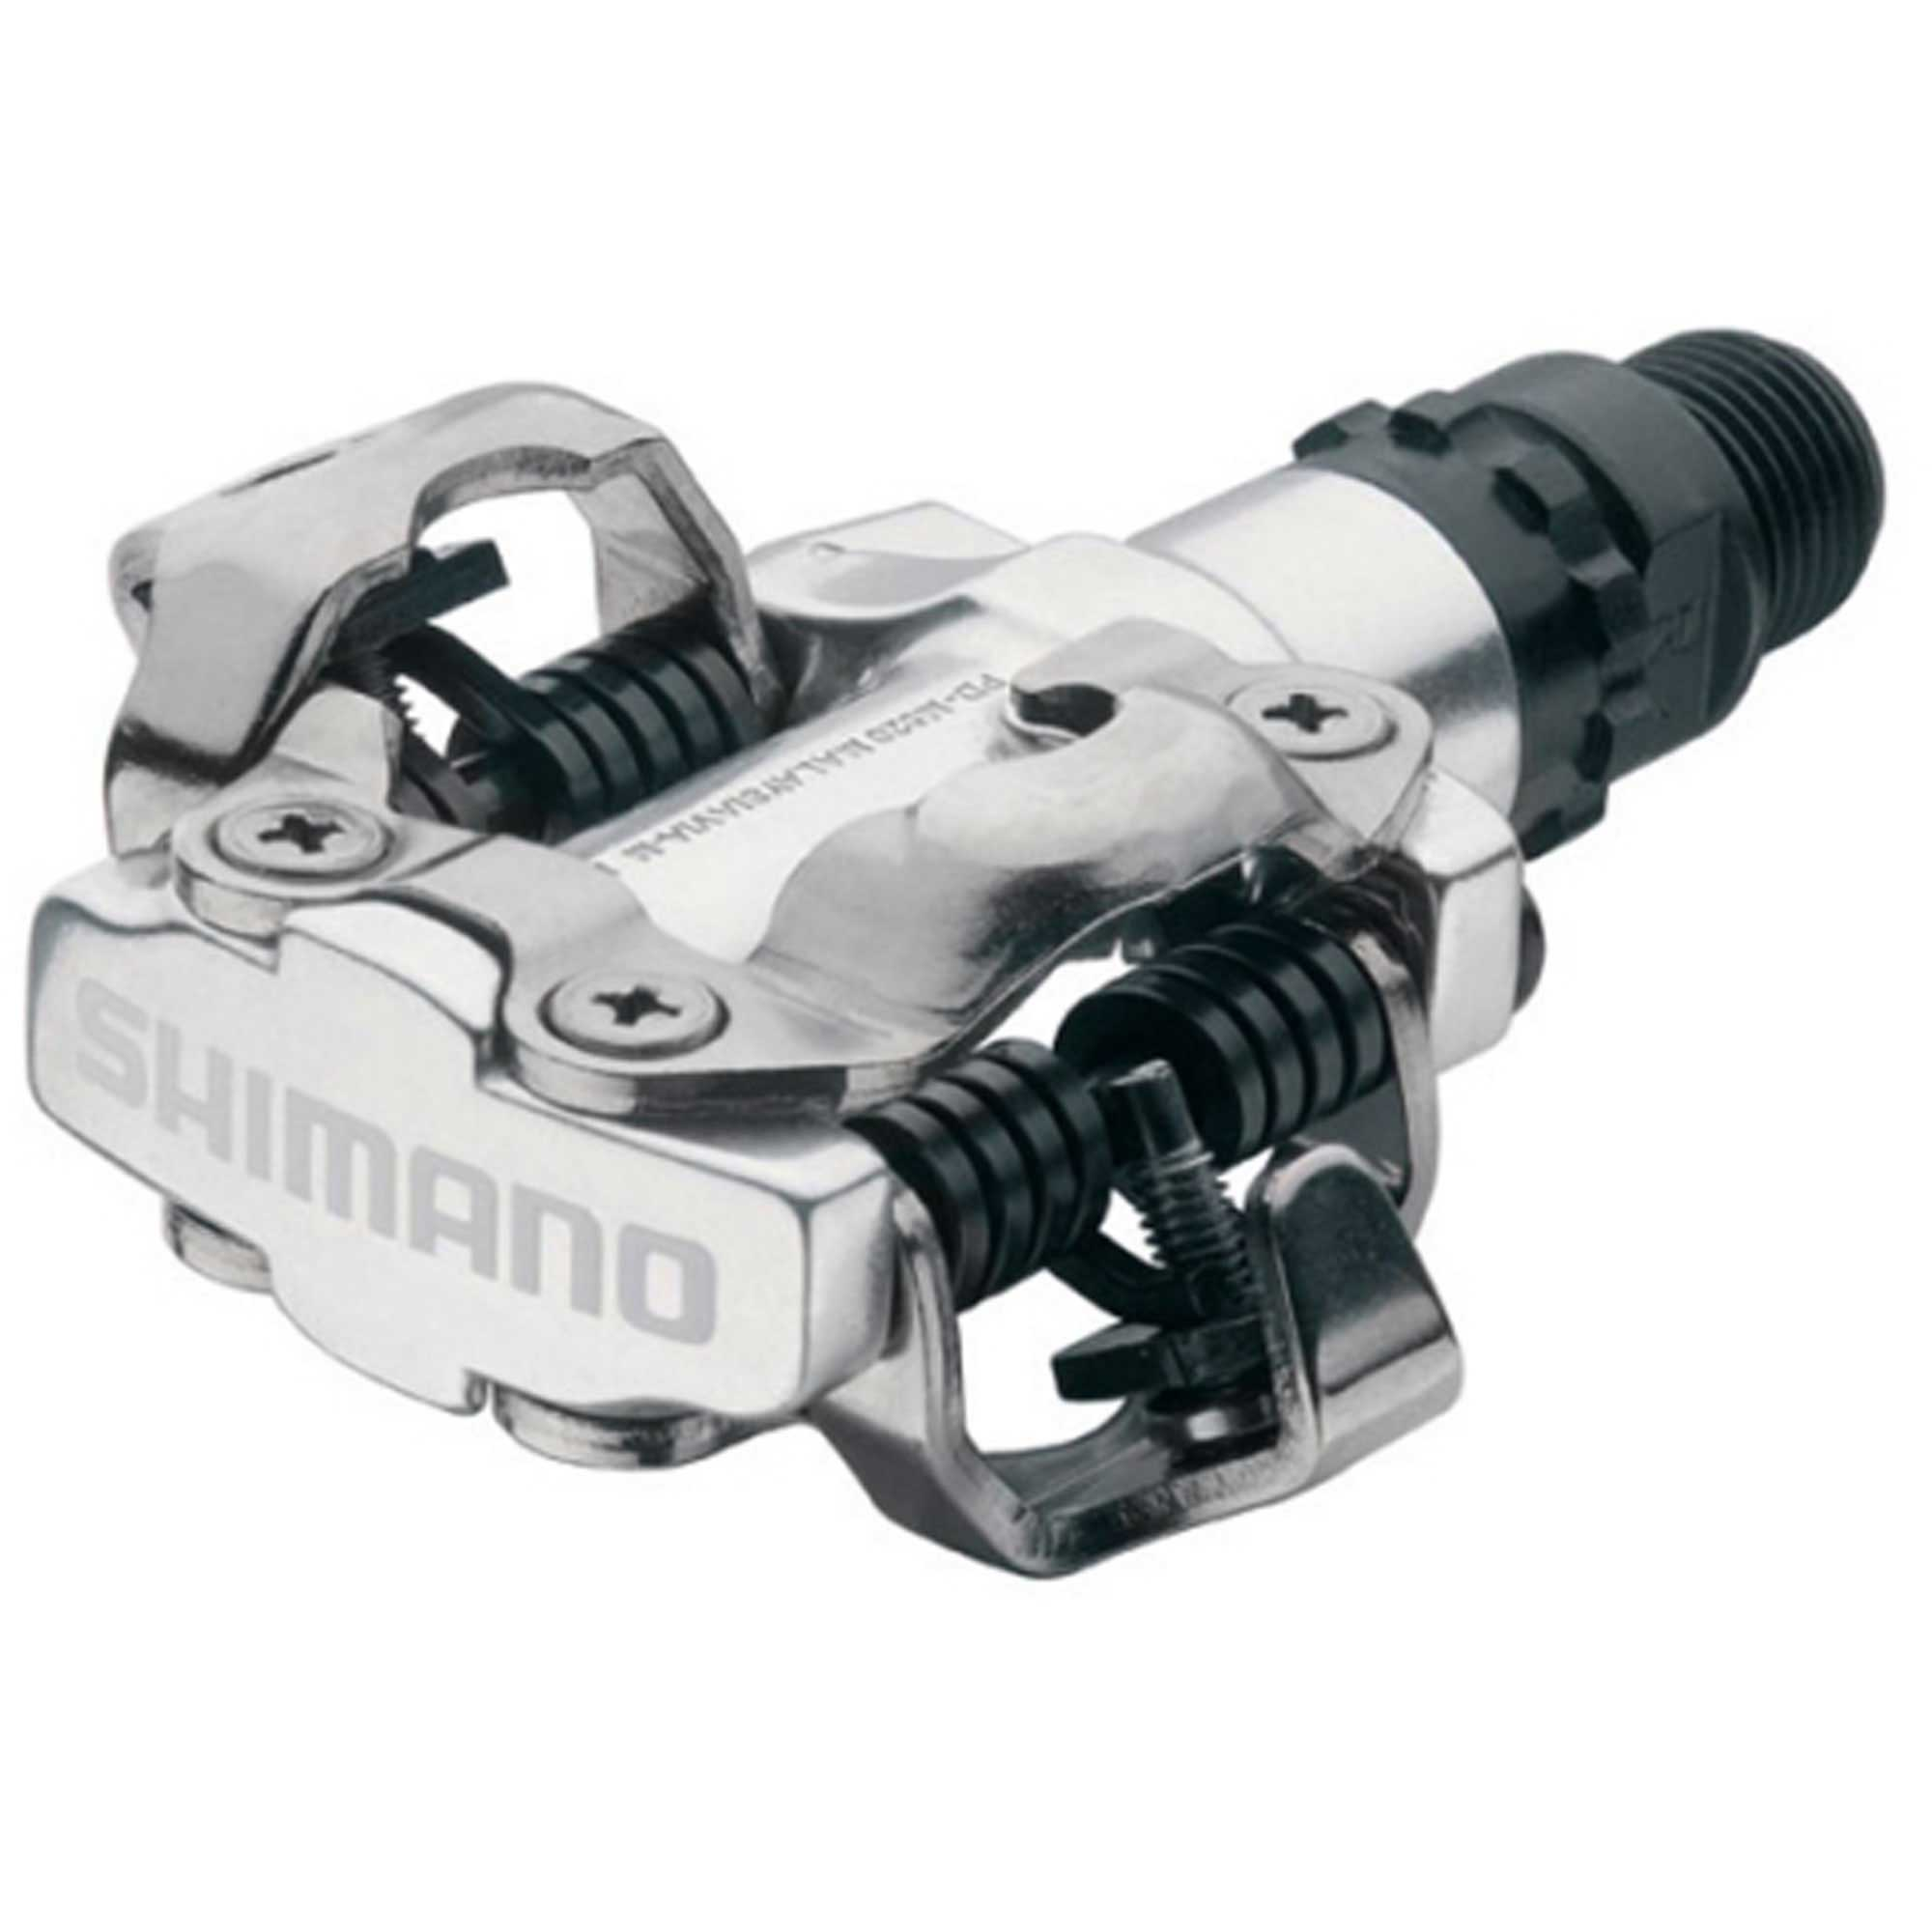 Shimano M520 SPD Mountain Bike Clipless Pedal With Free Cleats